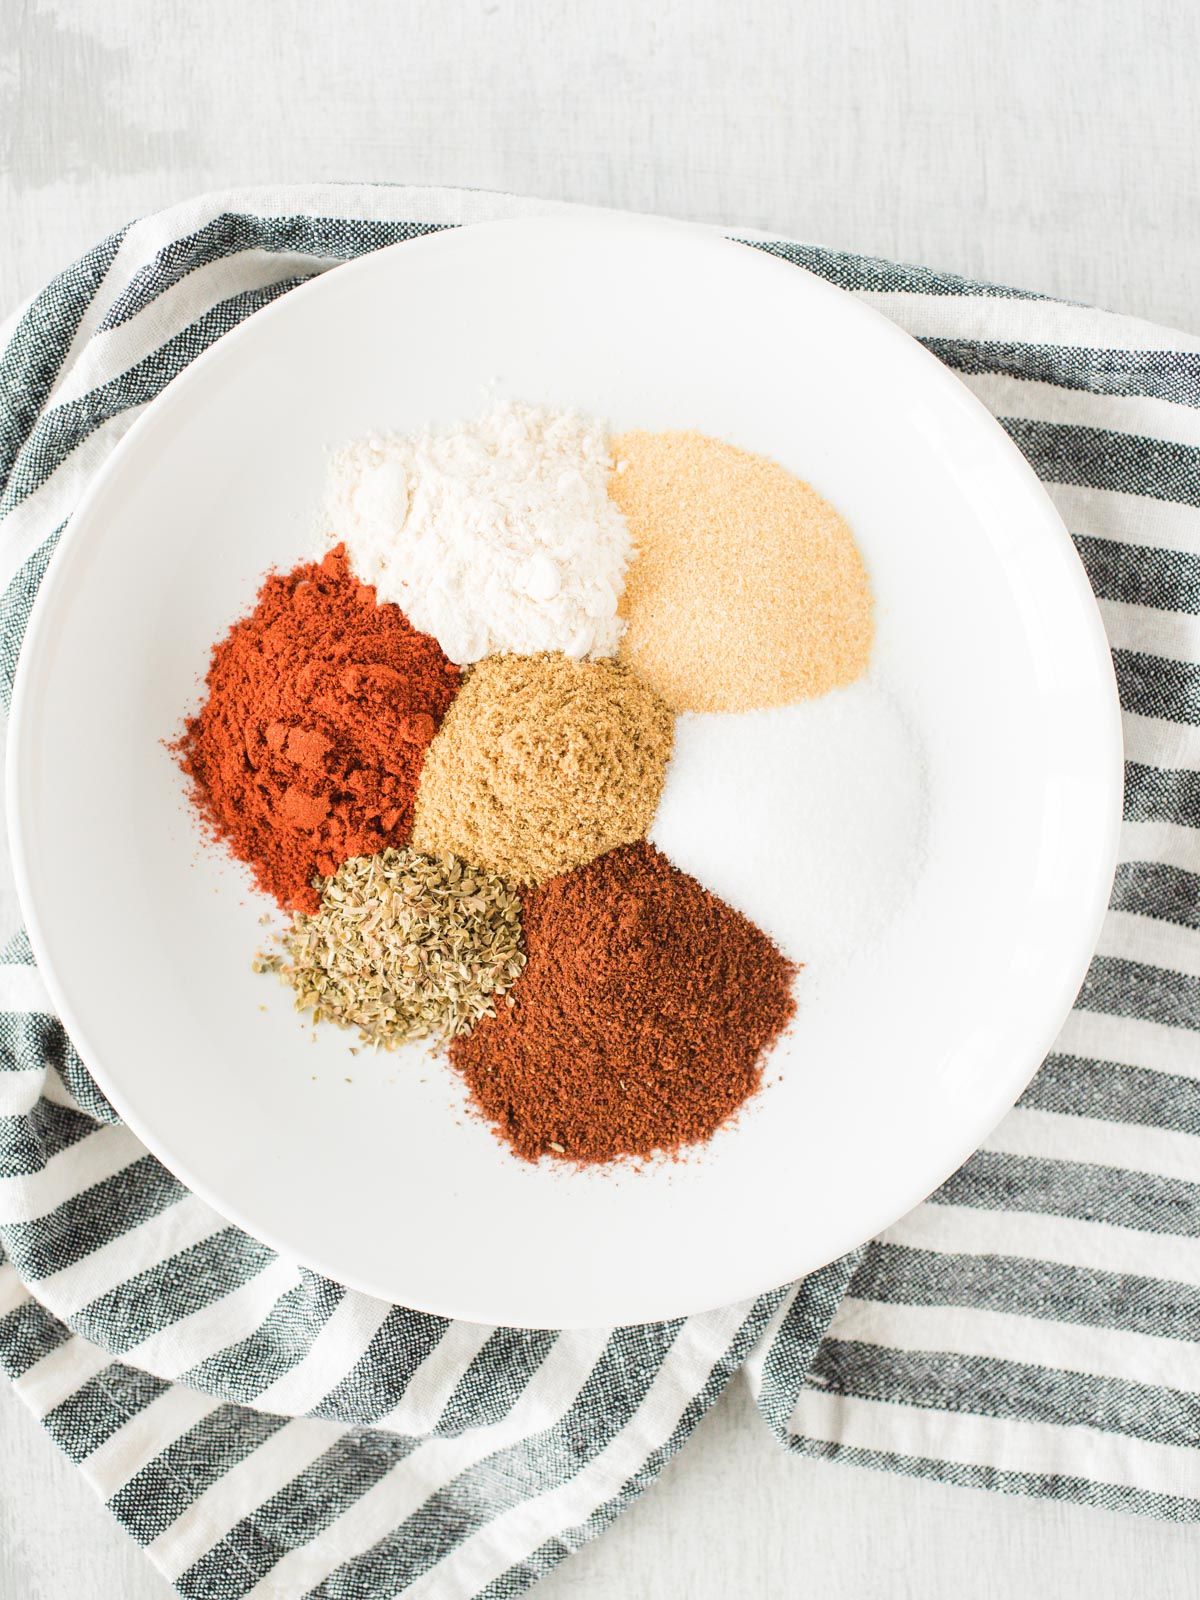 ingredients for taco seasoning on a plate on top of a striped cloth